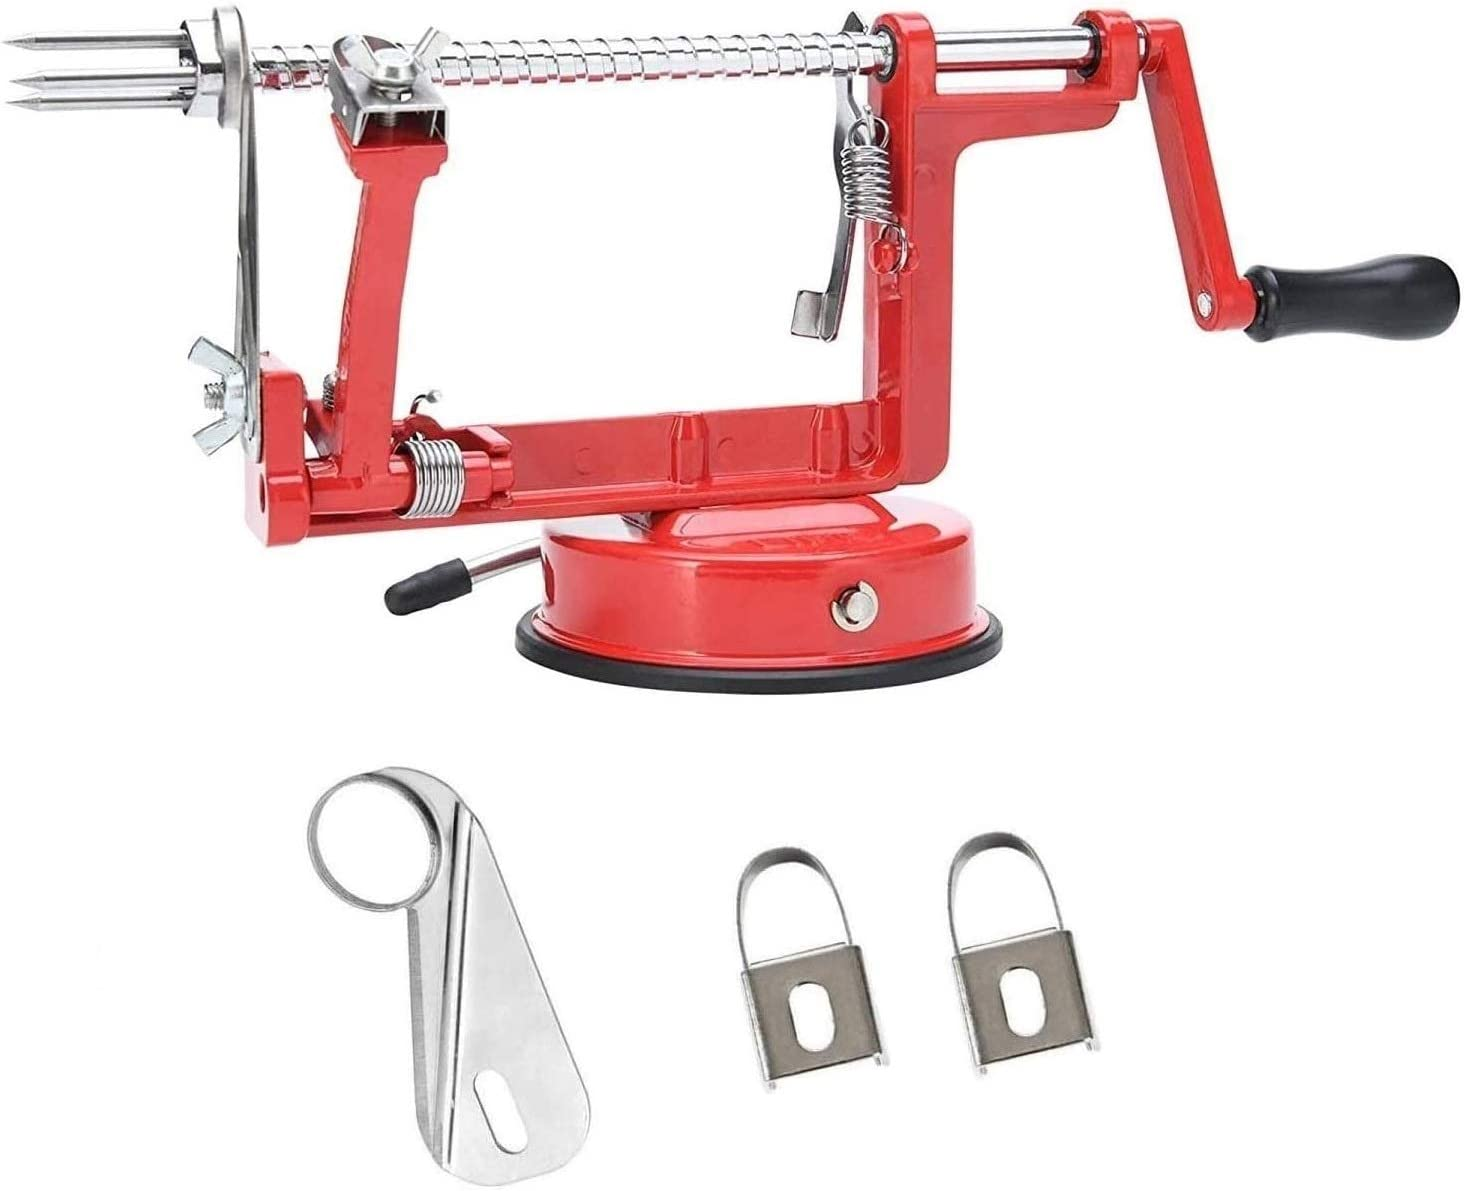 Rovello 3-in-1 Apple Potato Peeler Corer Slicer Machine with Powerful Vacuum Base and Wedge Cutter